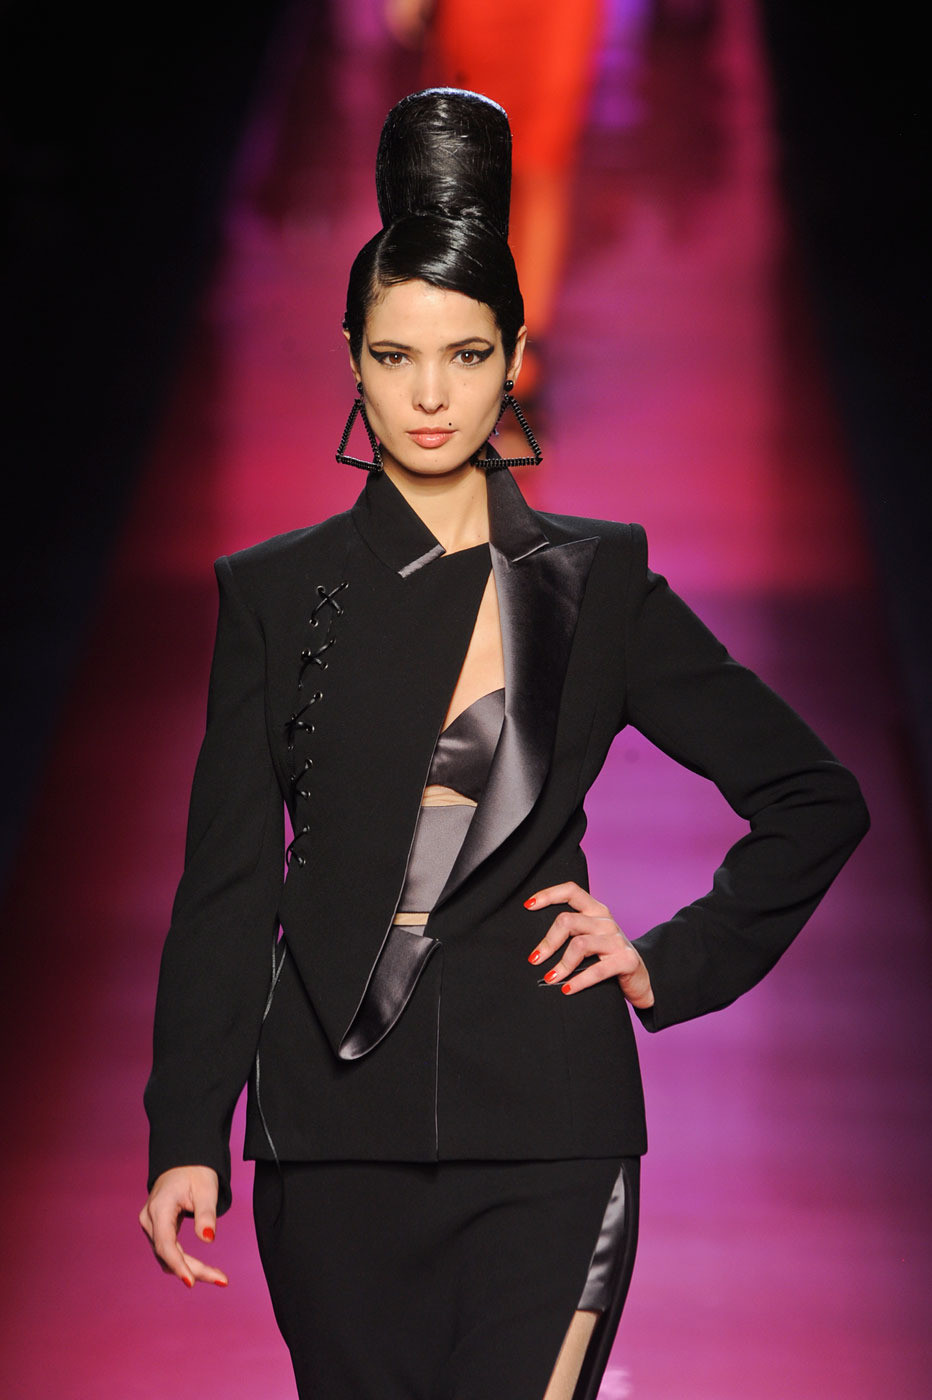 jean paul gaultier at couture spring 2012 livingly. Black Bedroom Furniture Sets. Home Design Ideas